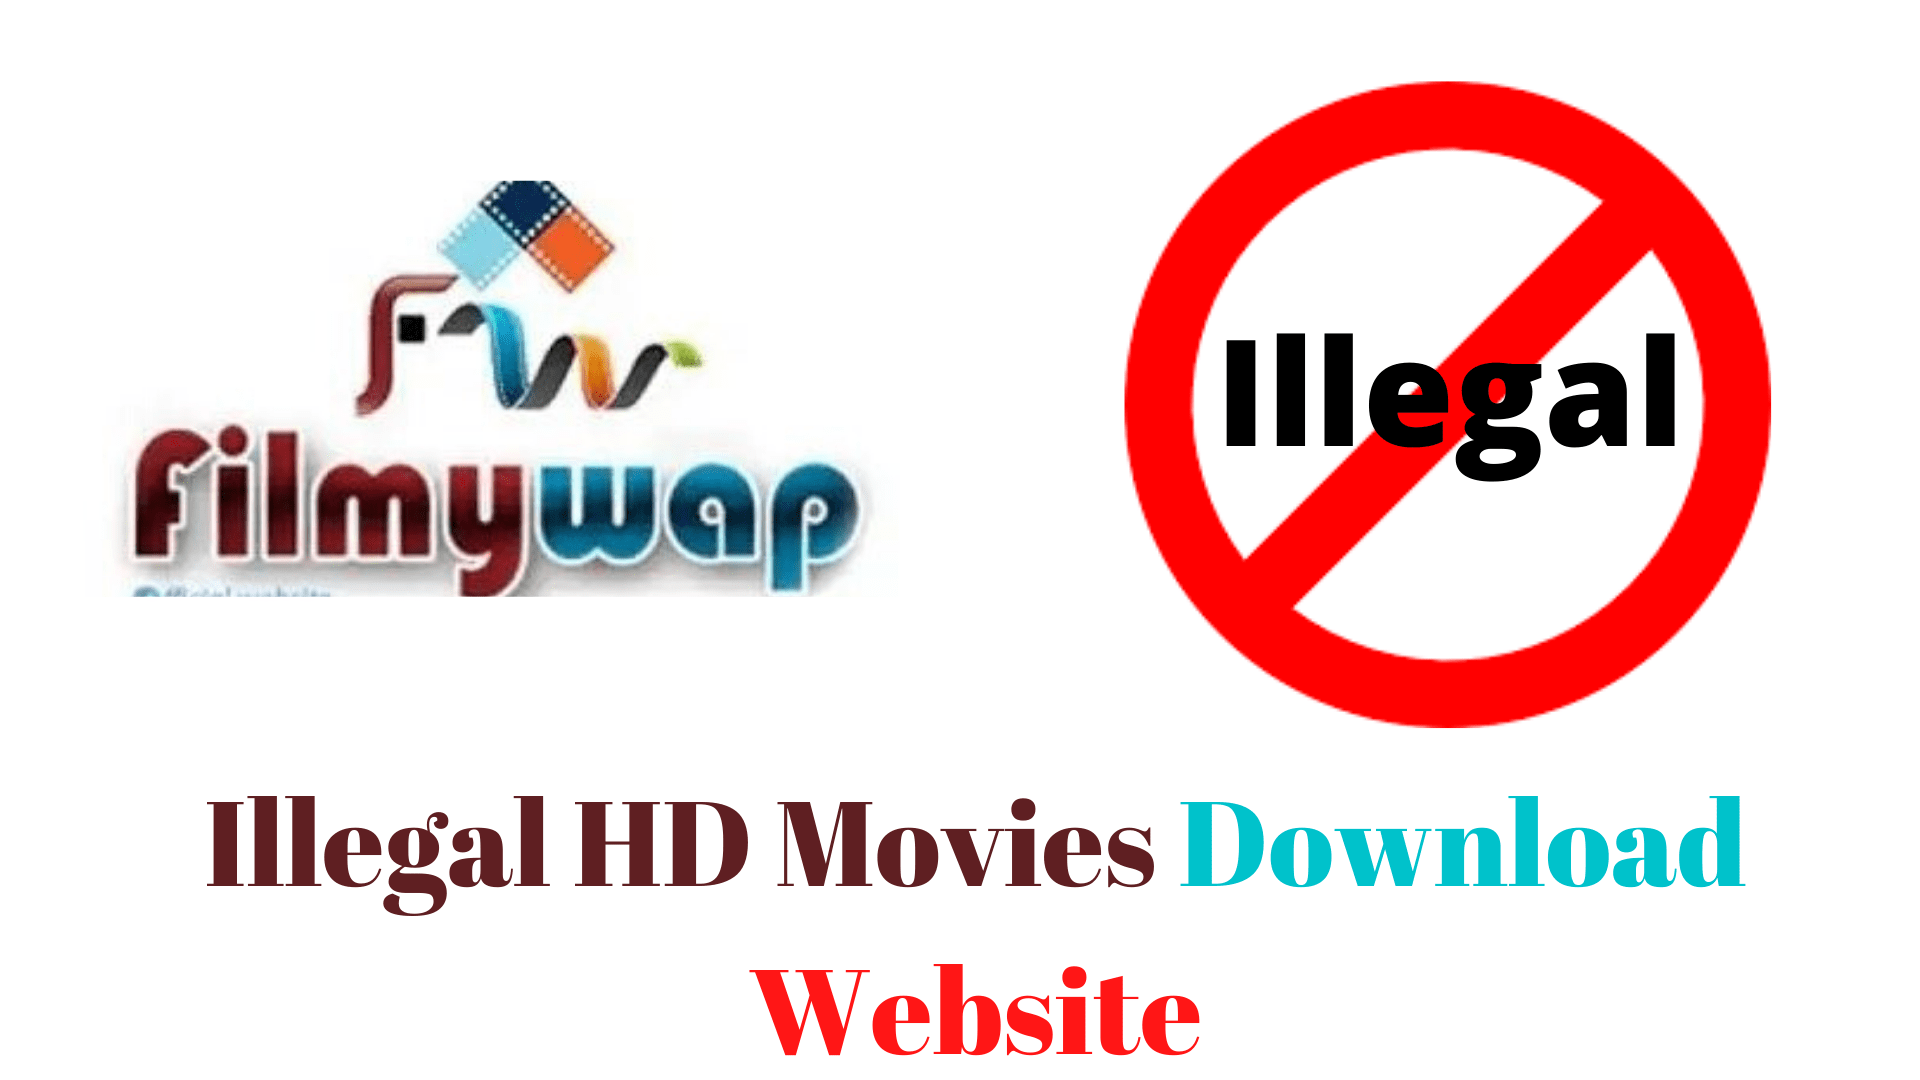 Filmywap 2020- Illegal HD Movies Download Website